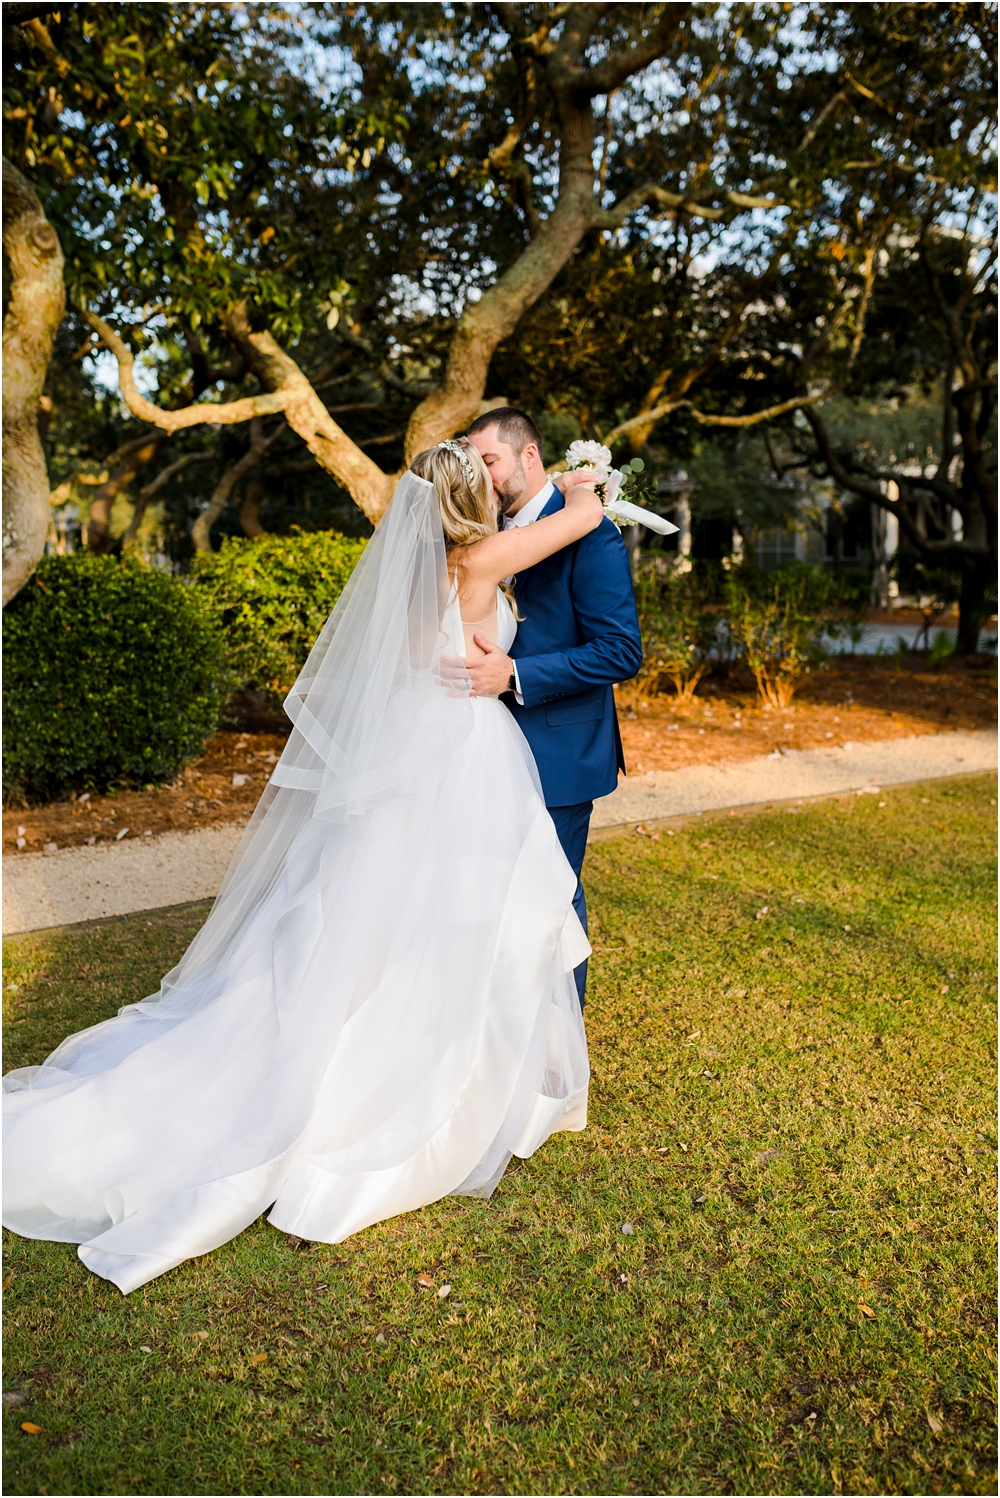 watercolor-florida-wedding-photographer-kiersten-stevenson-photography-94.jpg